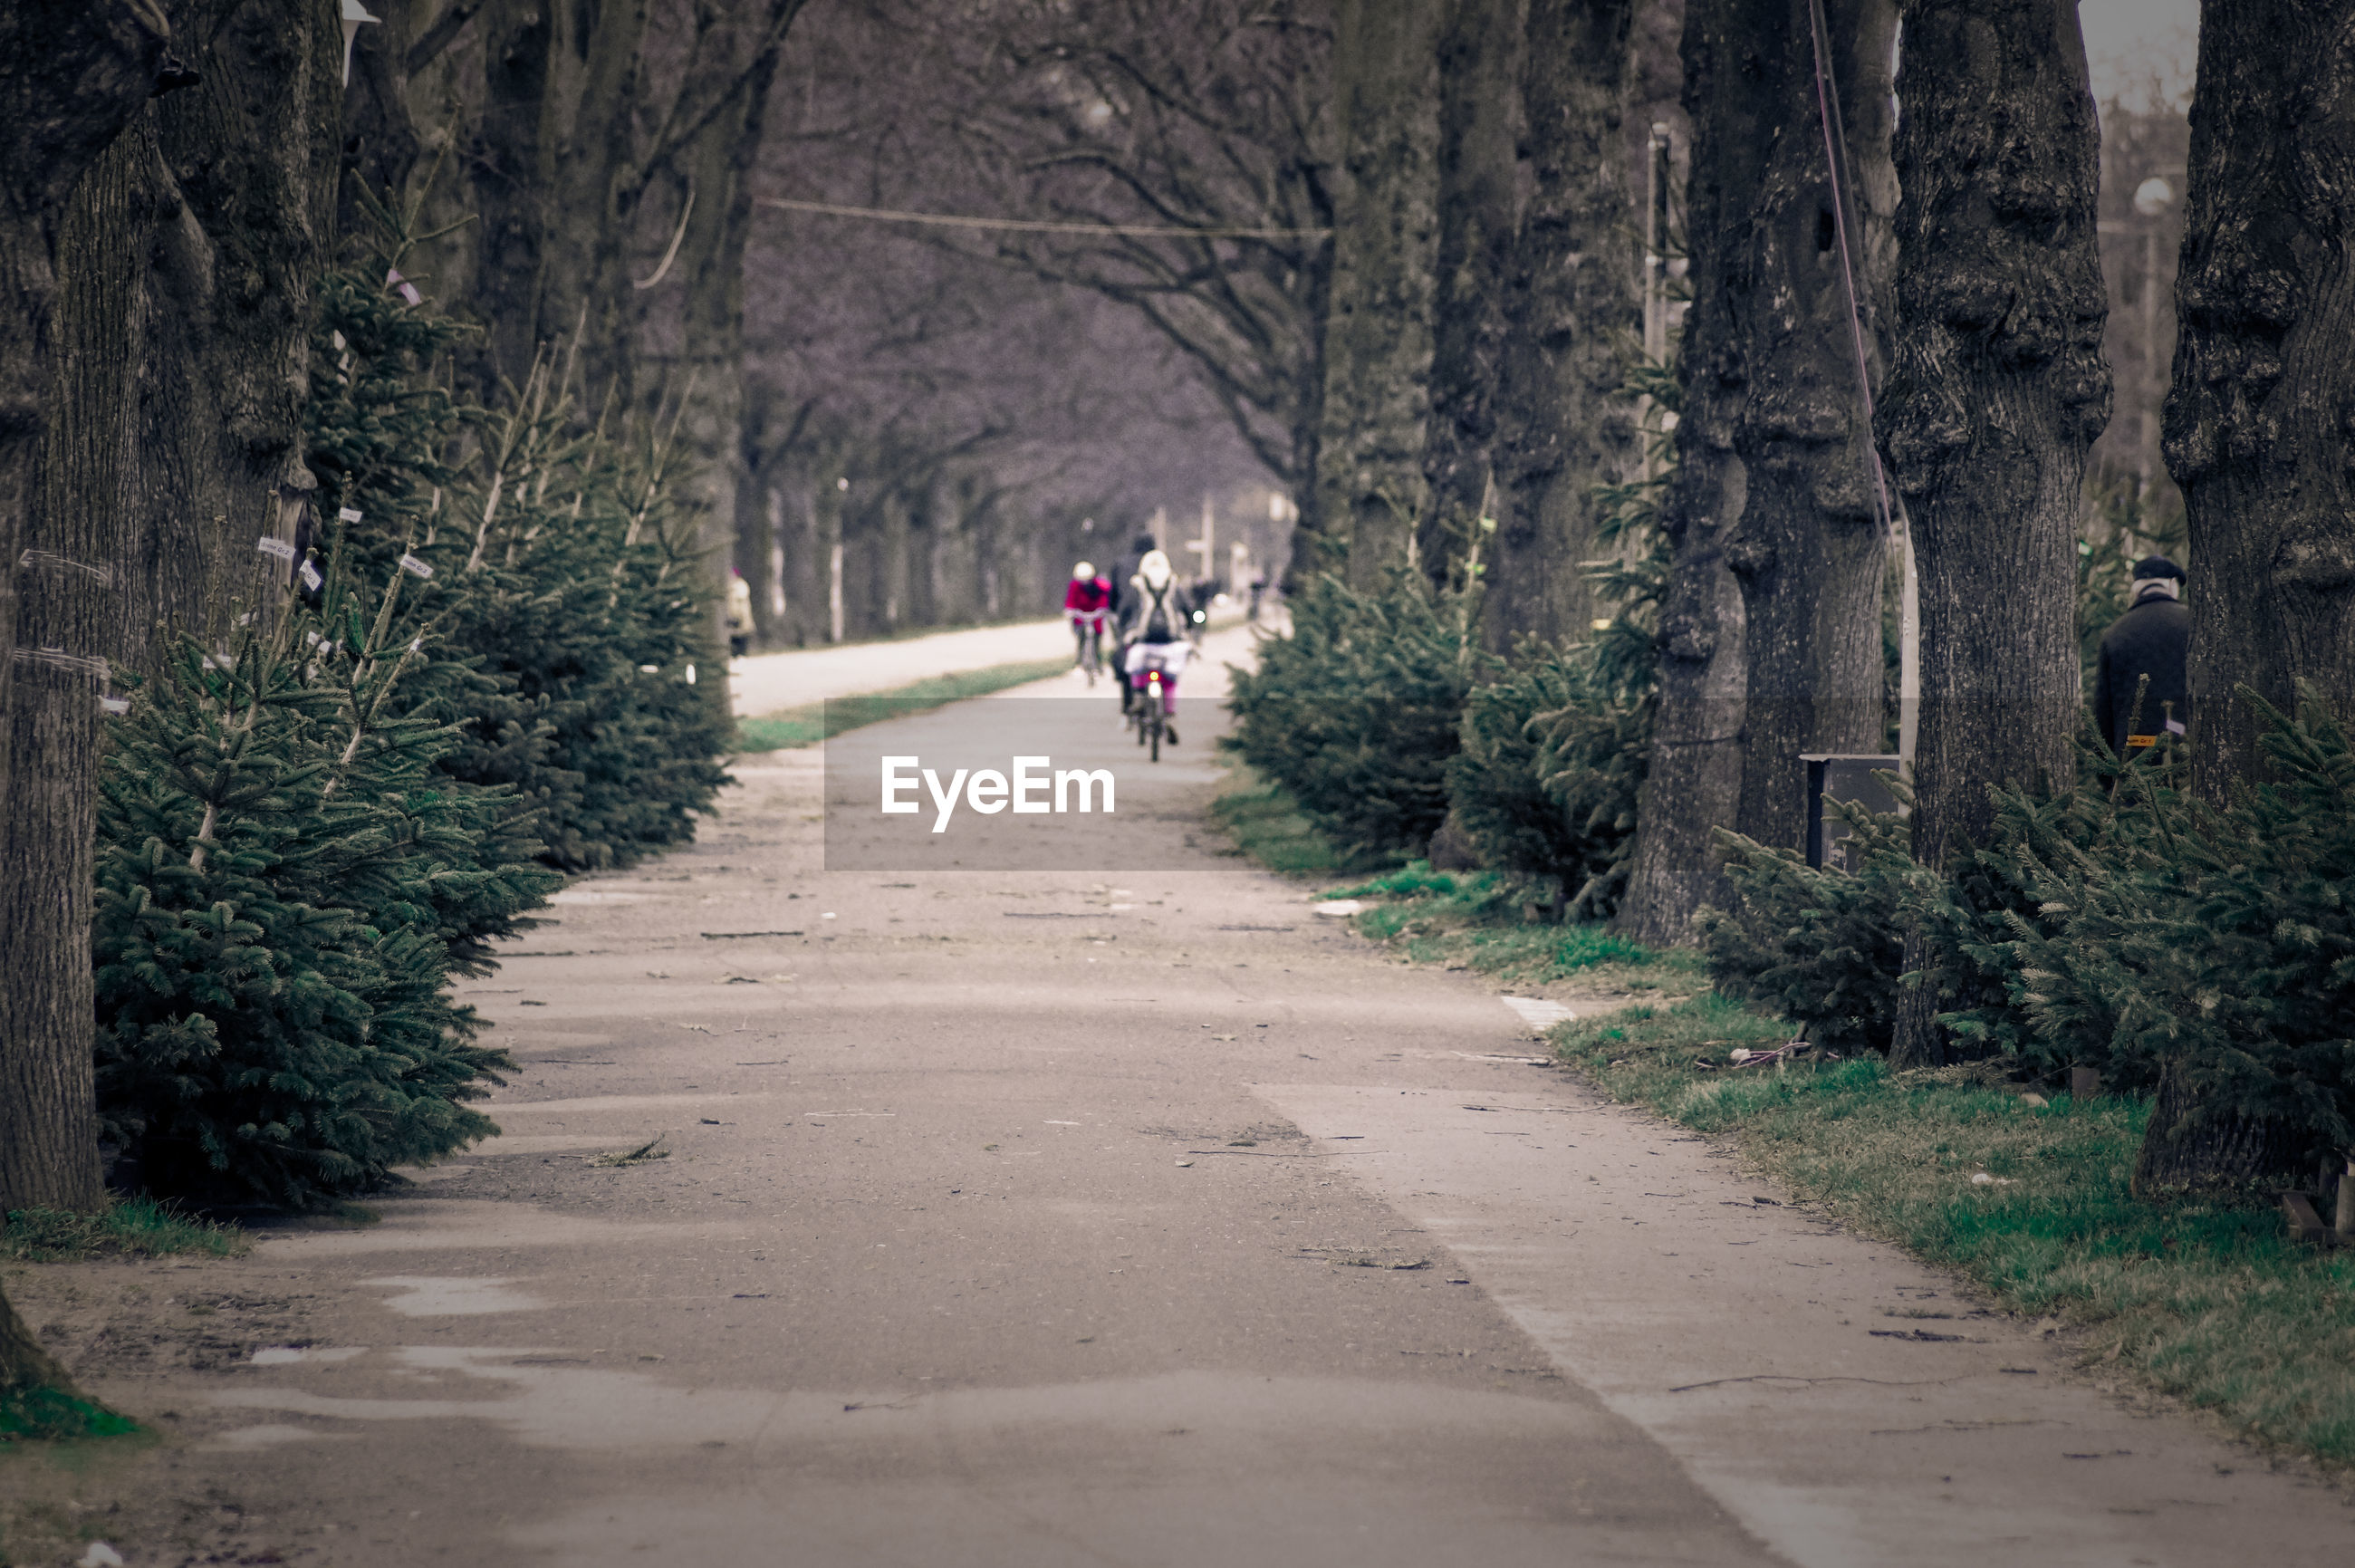 People cycling on road amidst trees in park